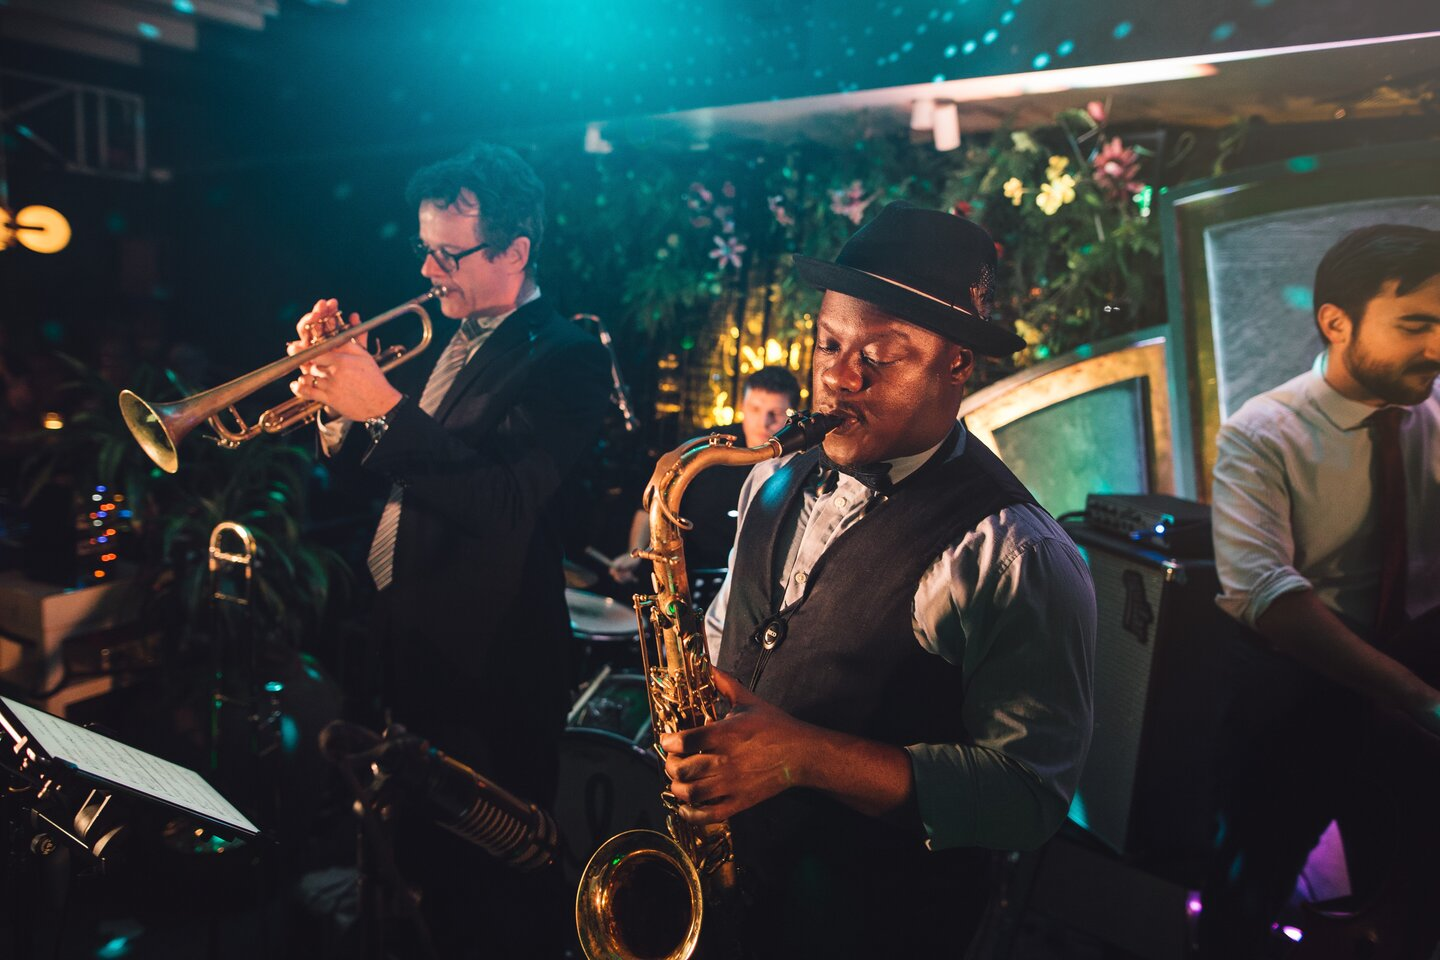 live band playing at an event